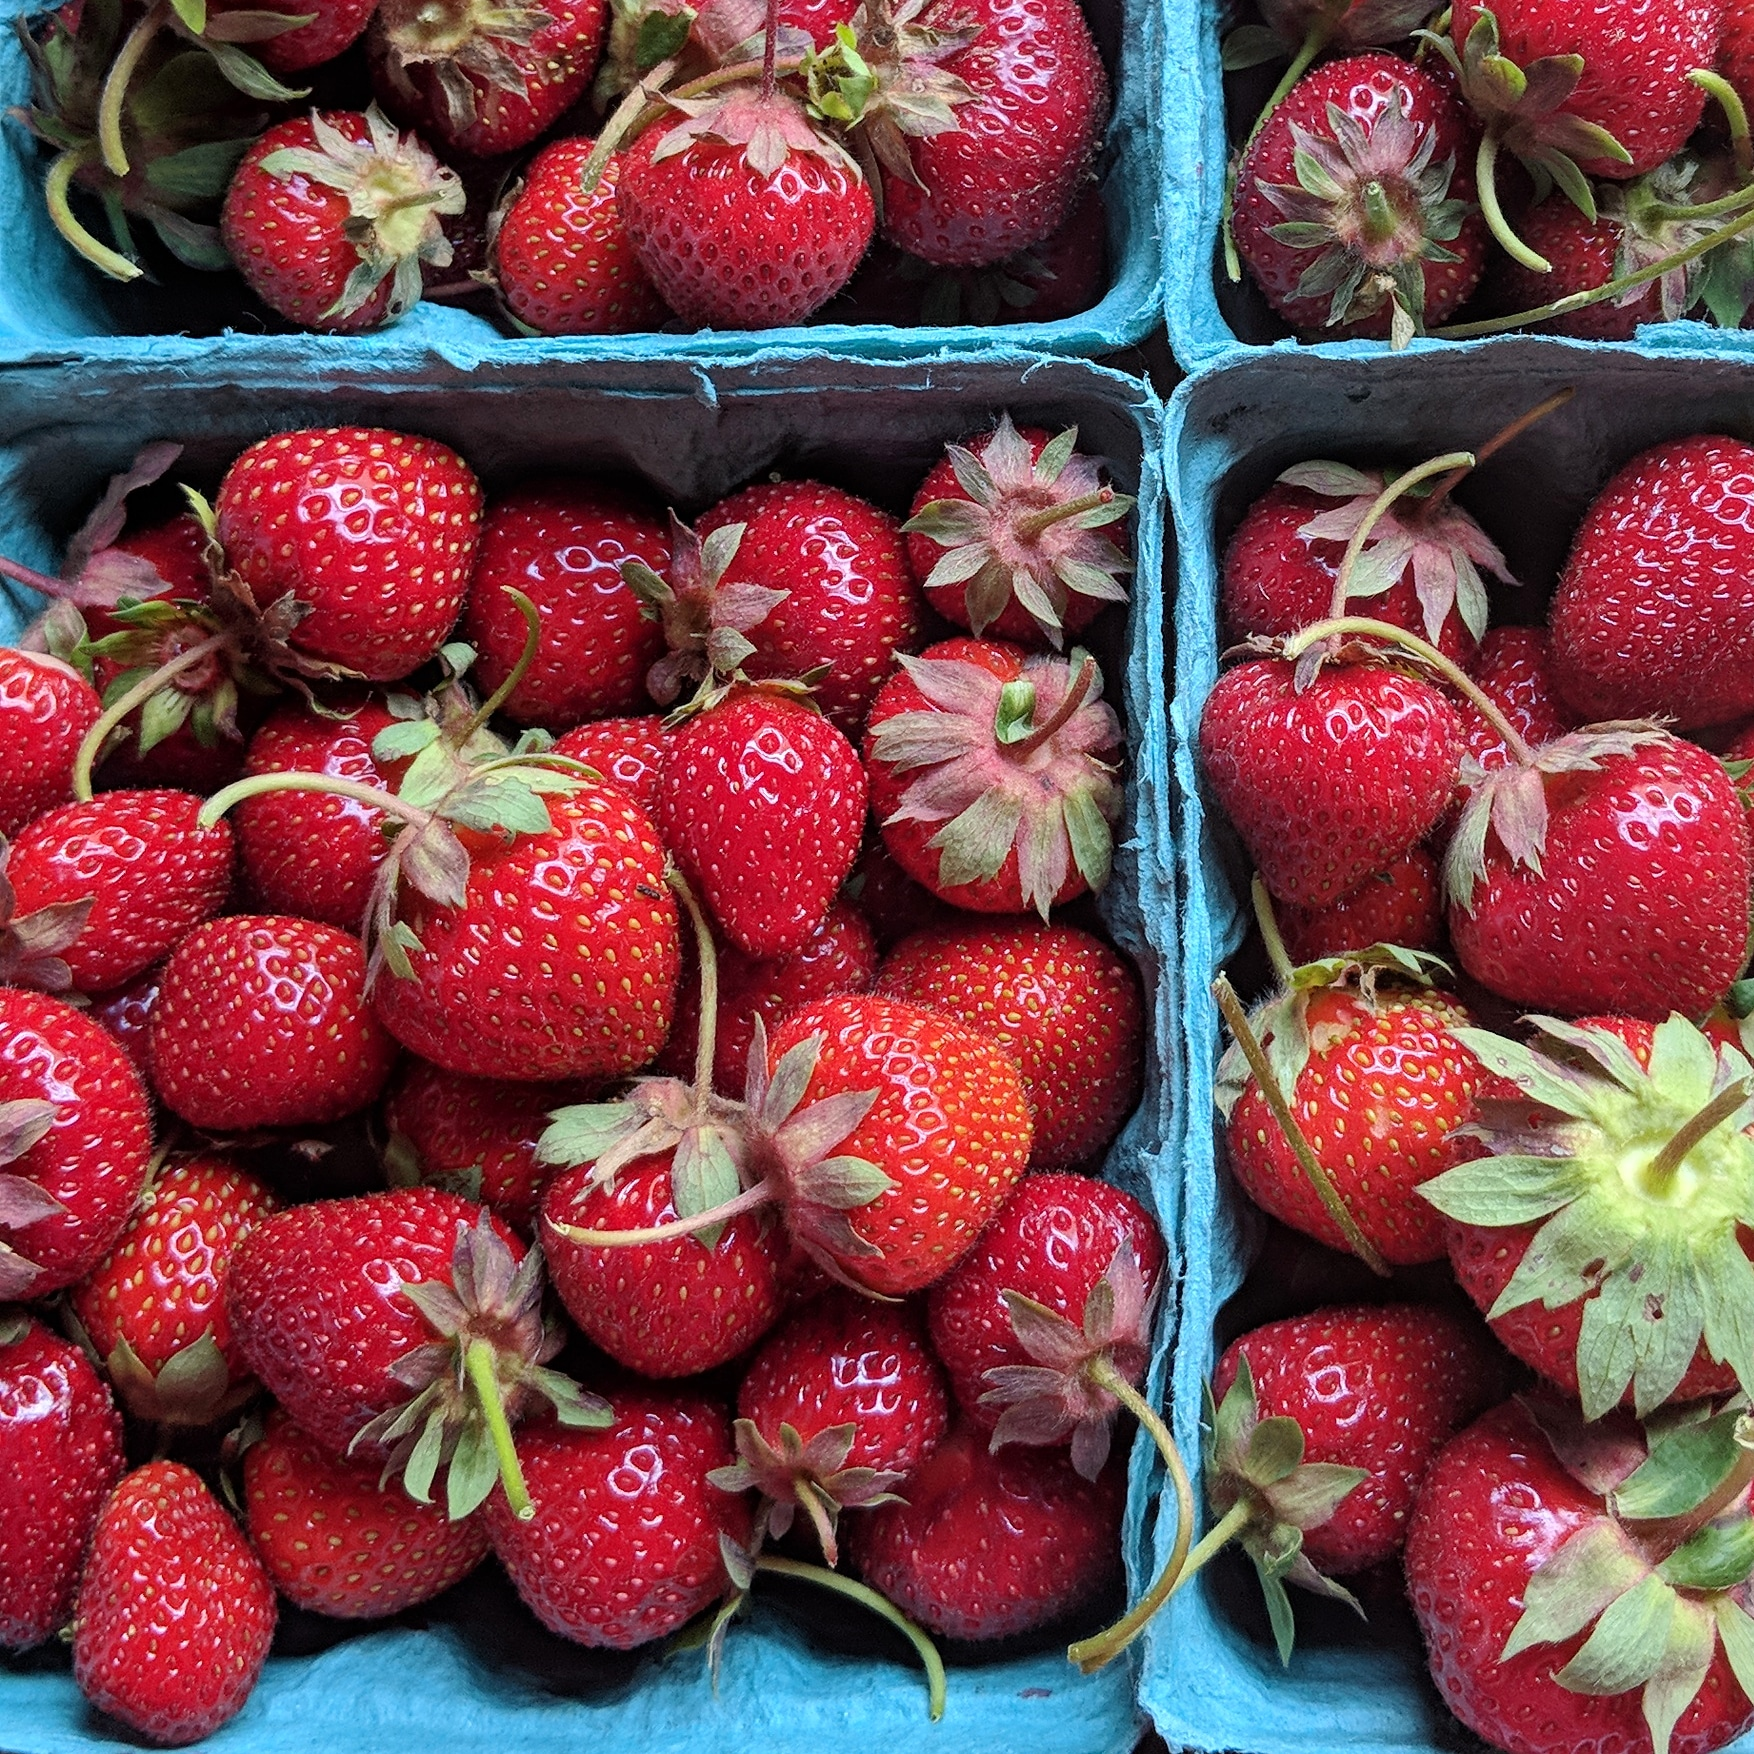 Greig Farm Strawberries